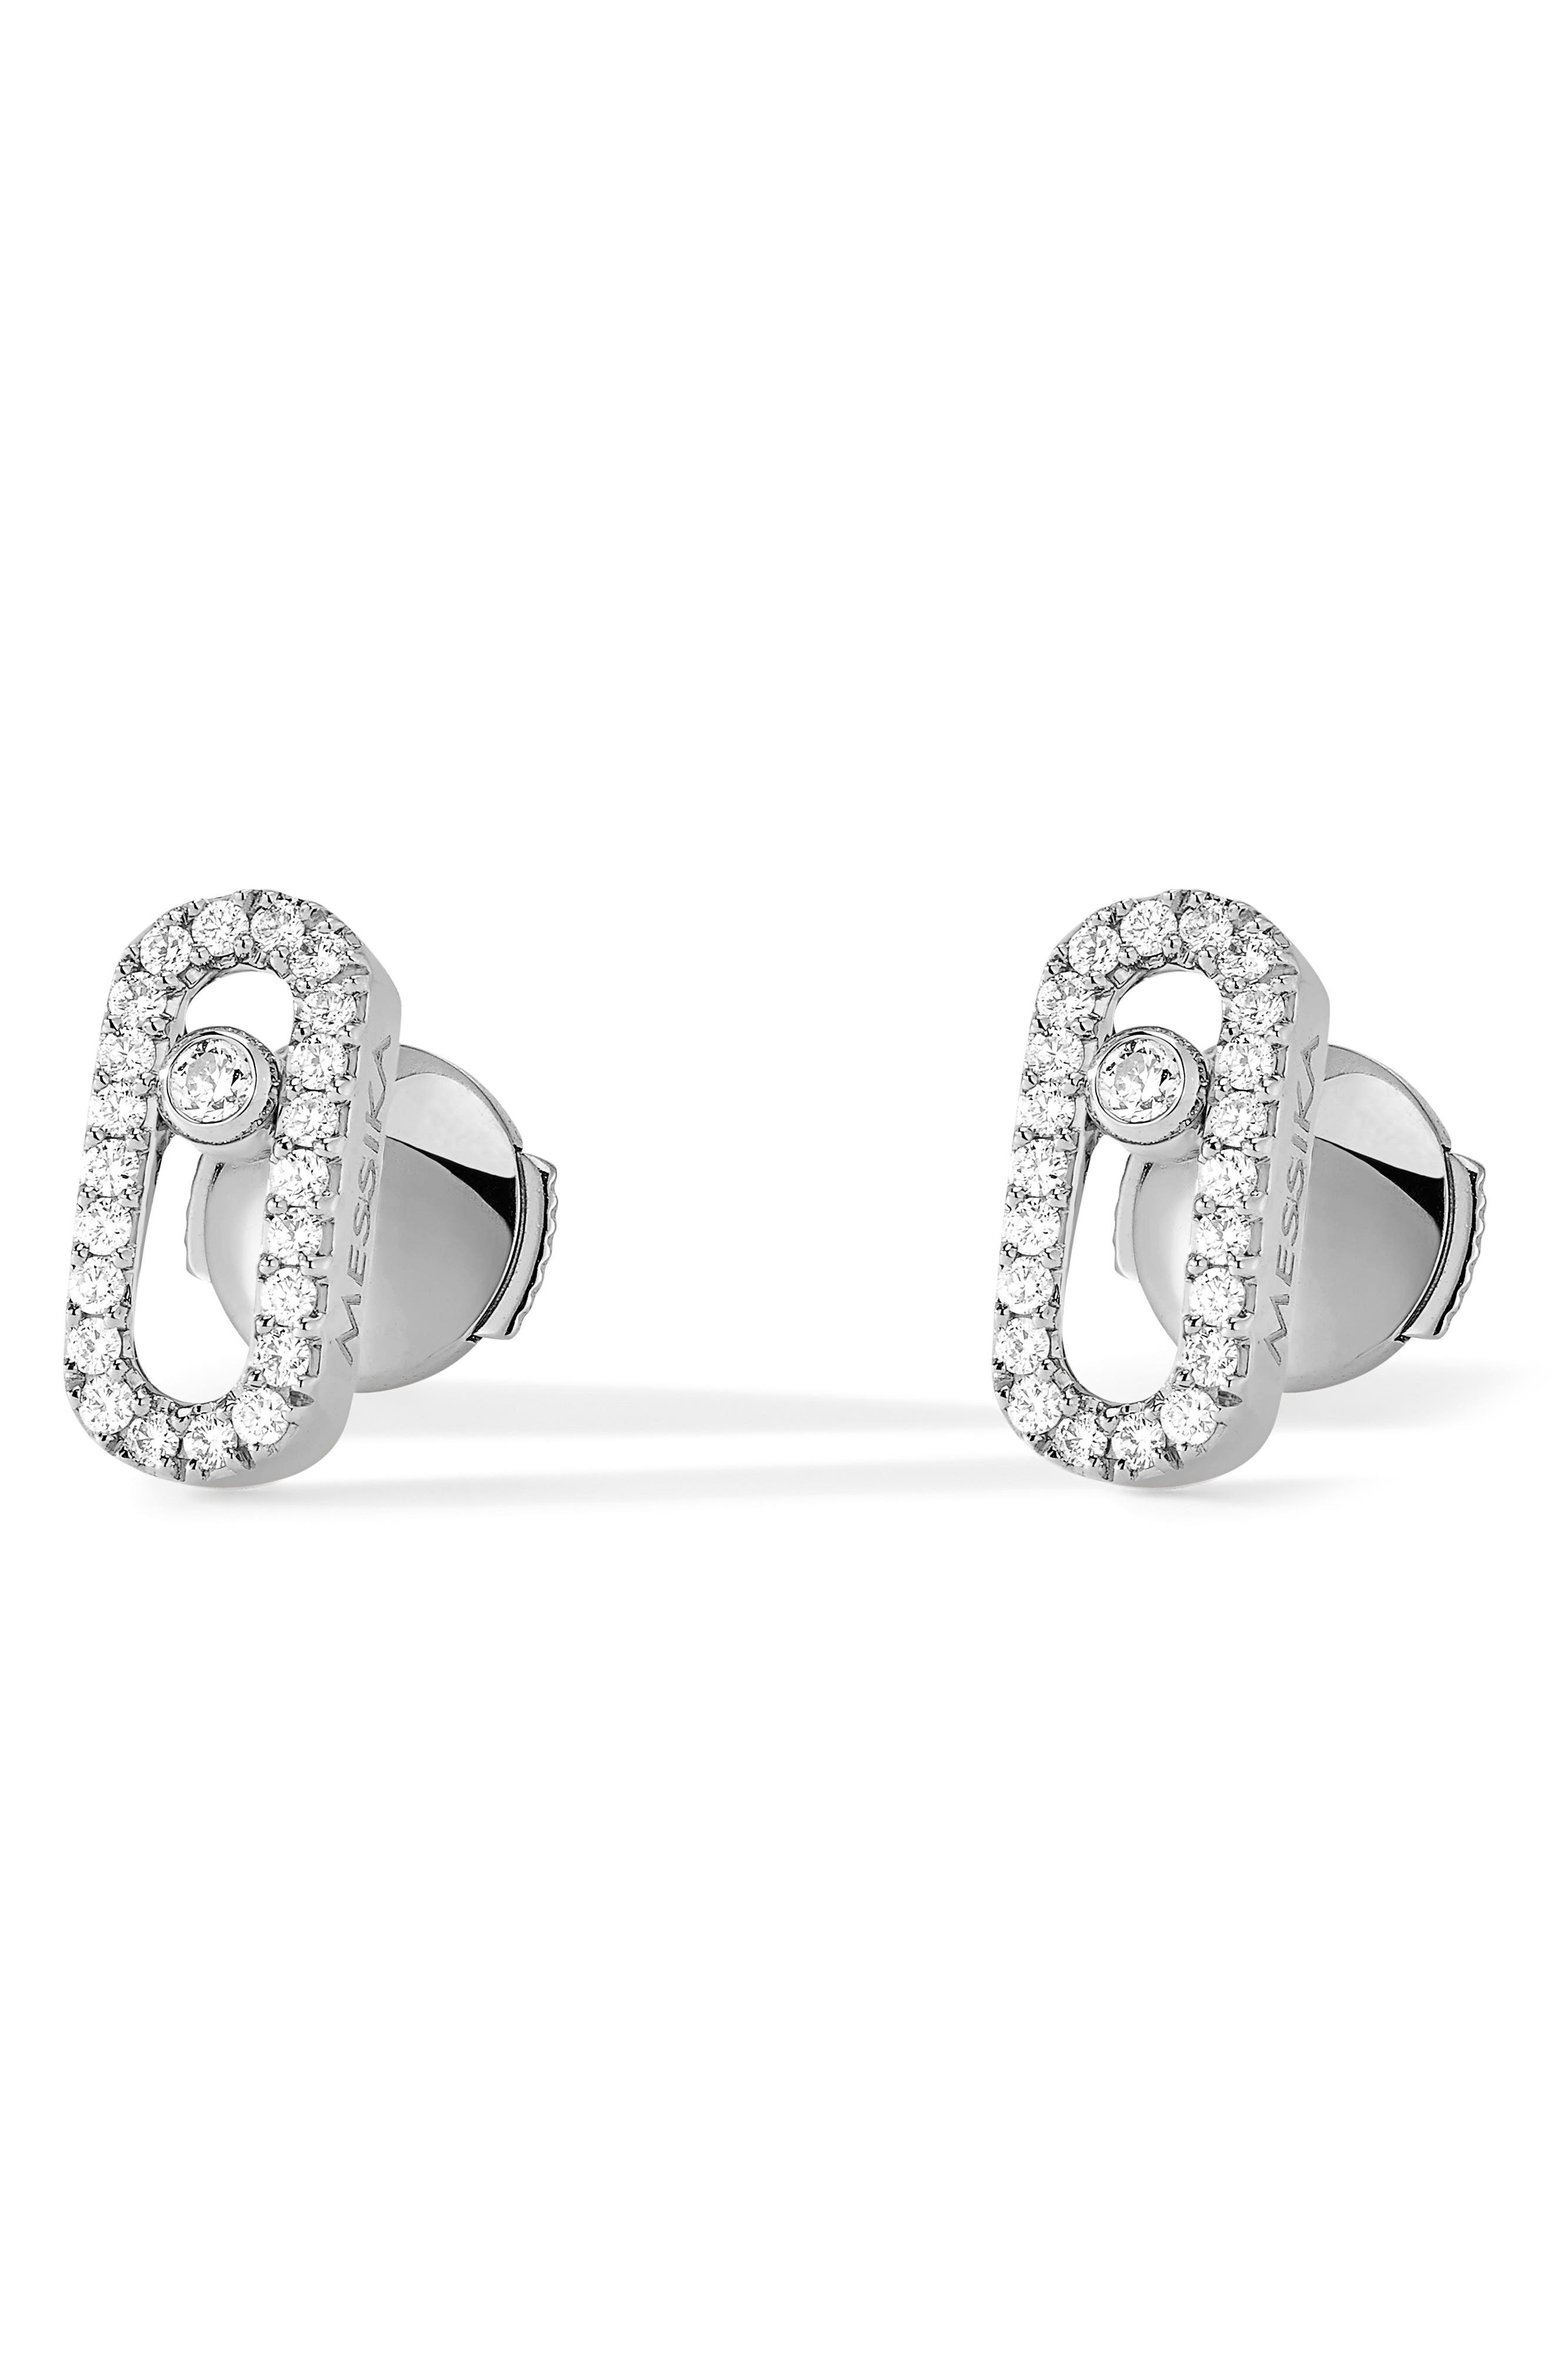 Messika Move Uno Pavé Diamond Stud Earrings